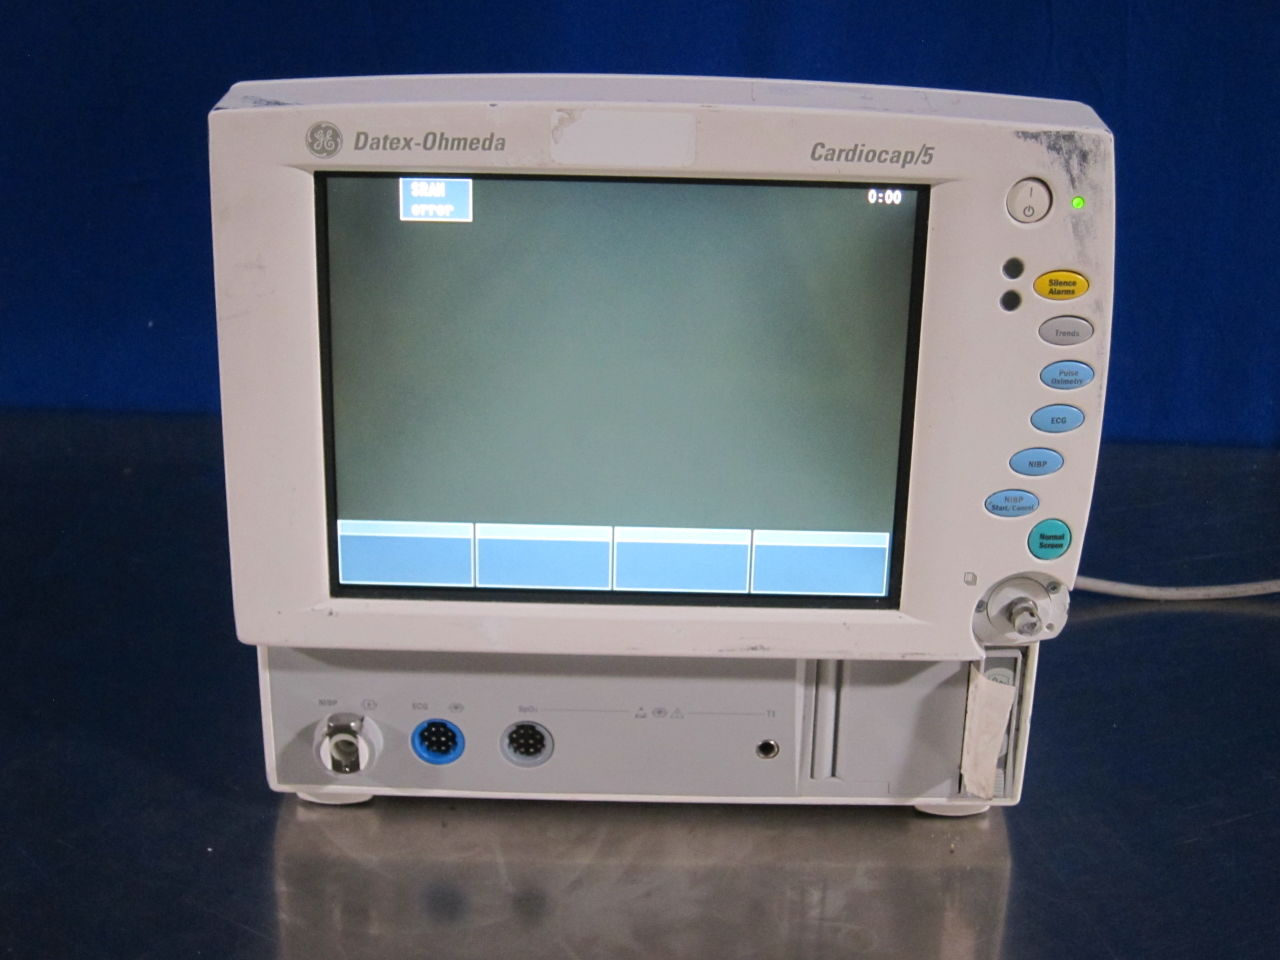 GE DATEX-OHMEDA Cardiocap 5 Monitor